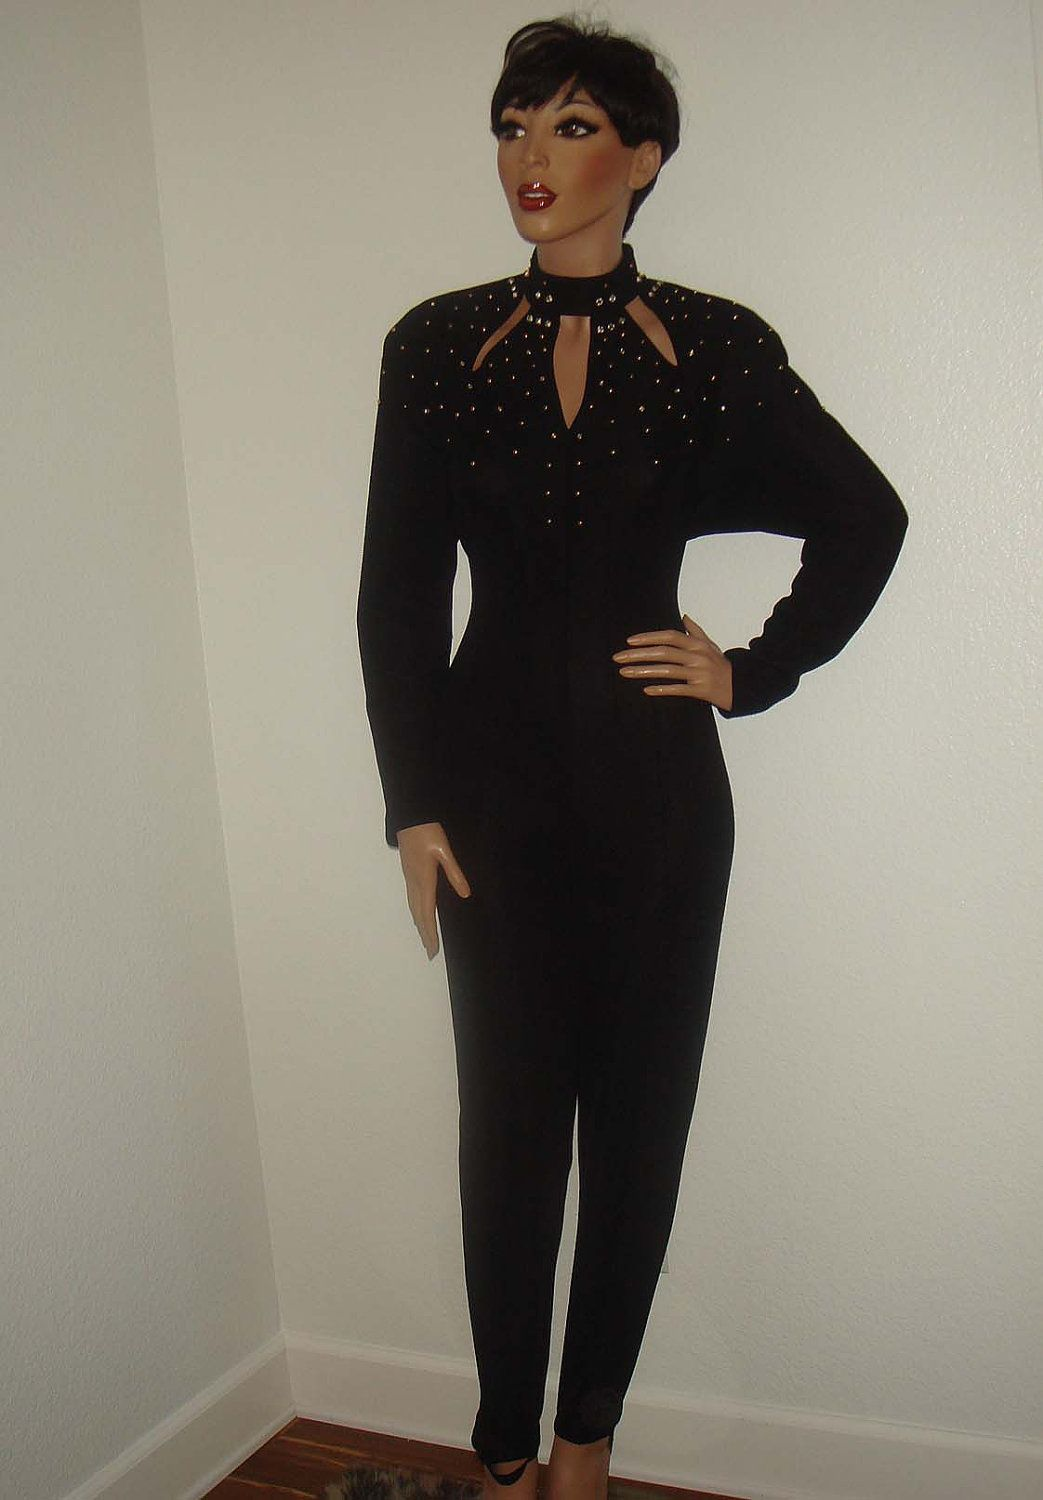 628b227cb34 Vintage 80s Black Jumpsuit Gold and Rhinestone Studded Cutout Bodycon  Catsuit